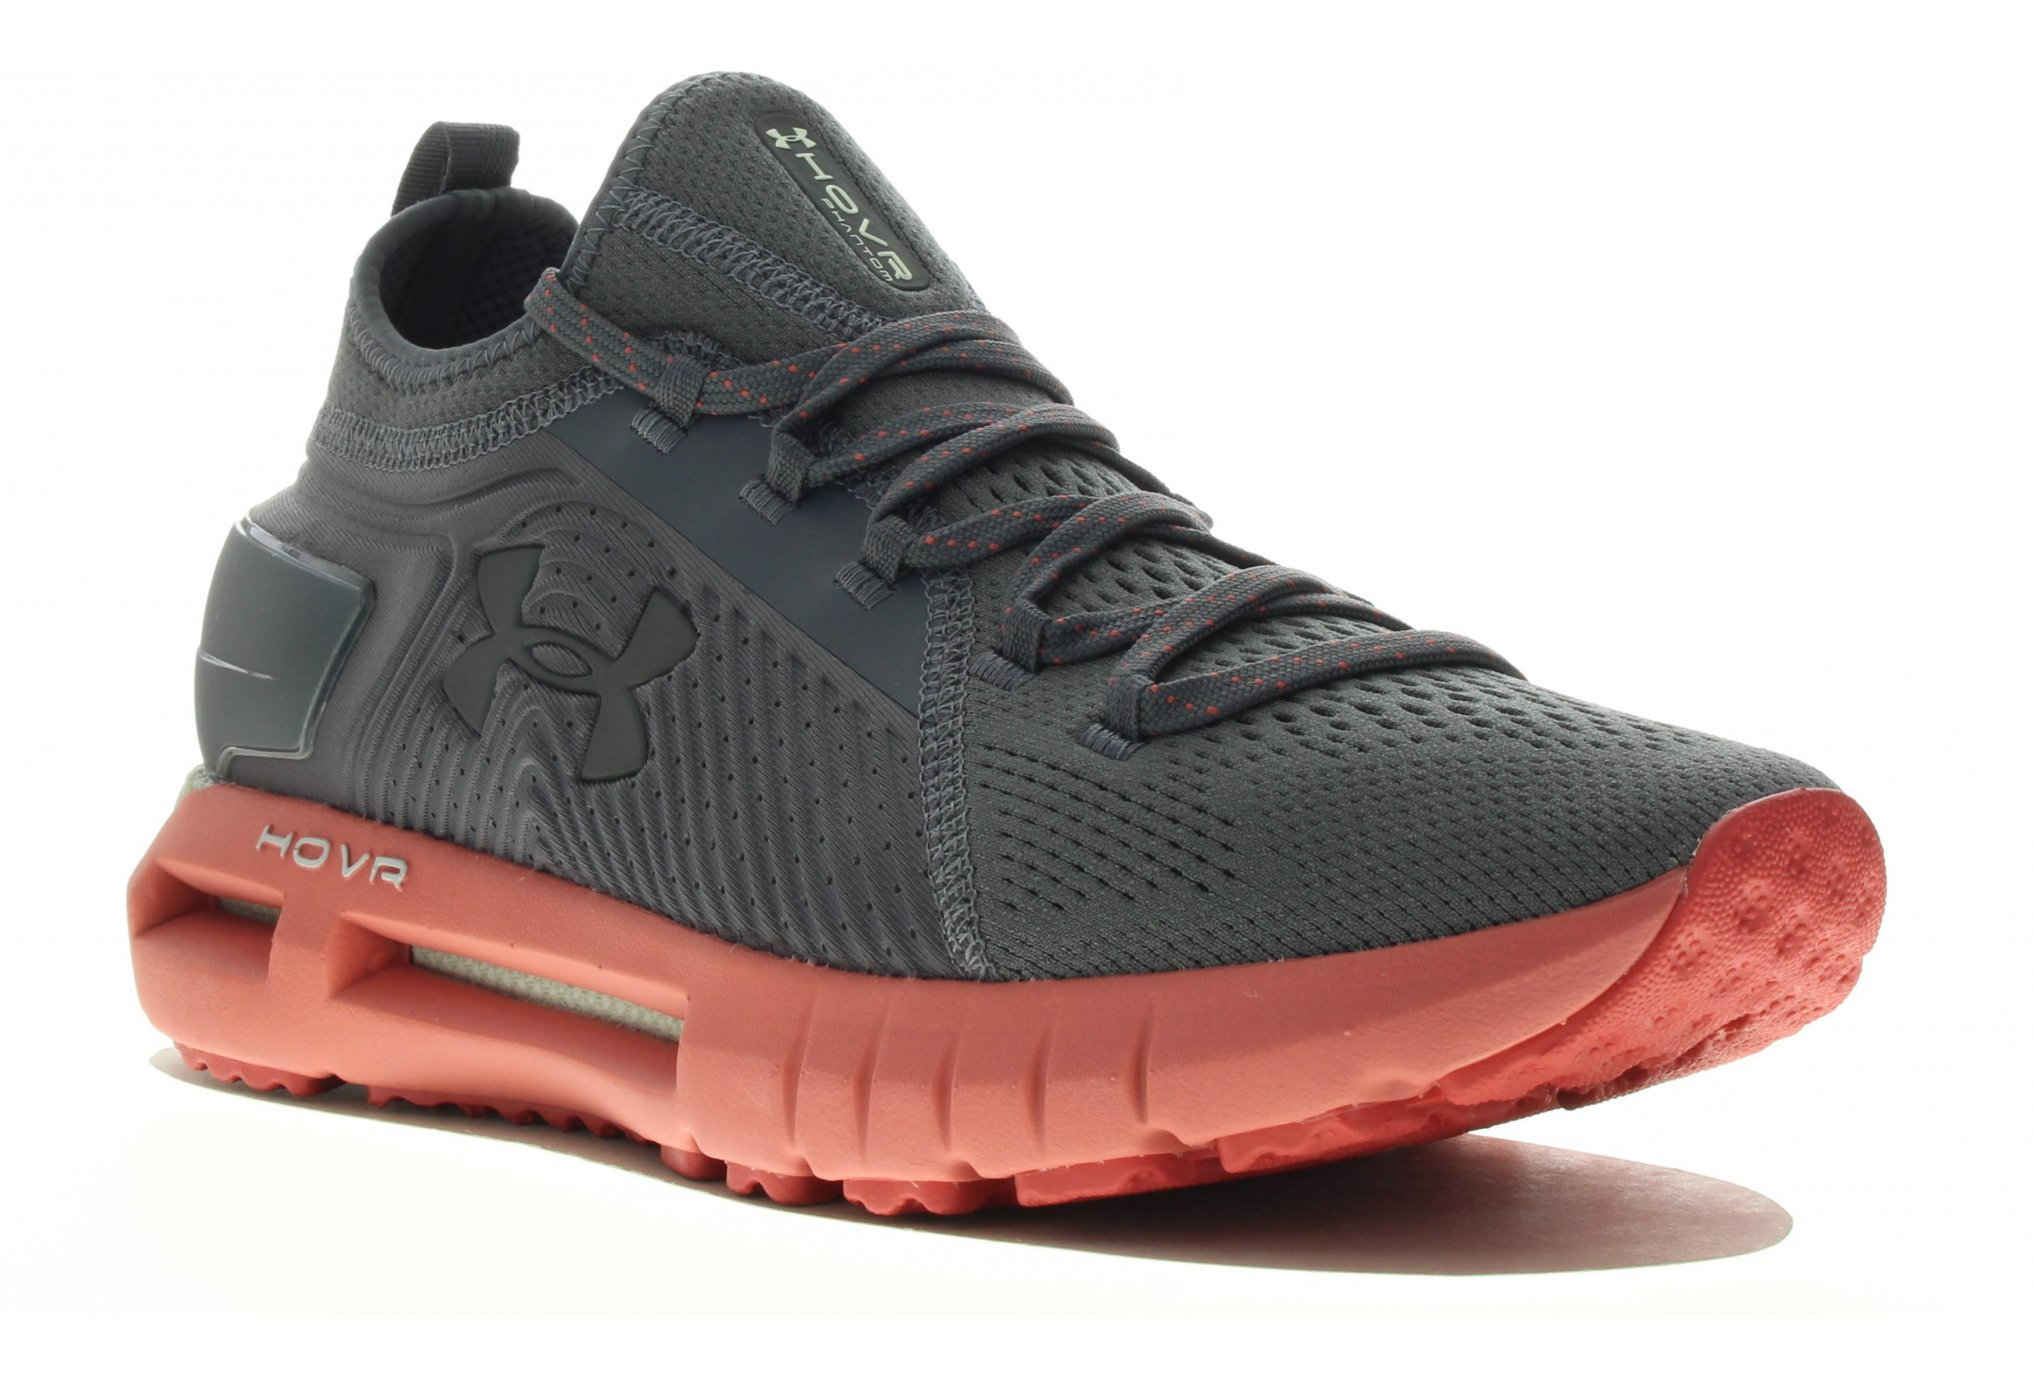 Under Armour HOVR Phantom SE Chaussures homme